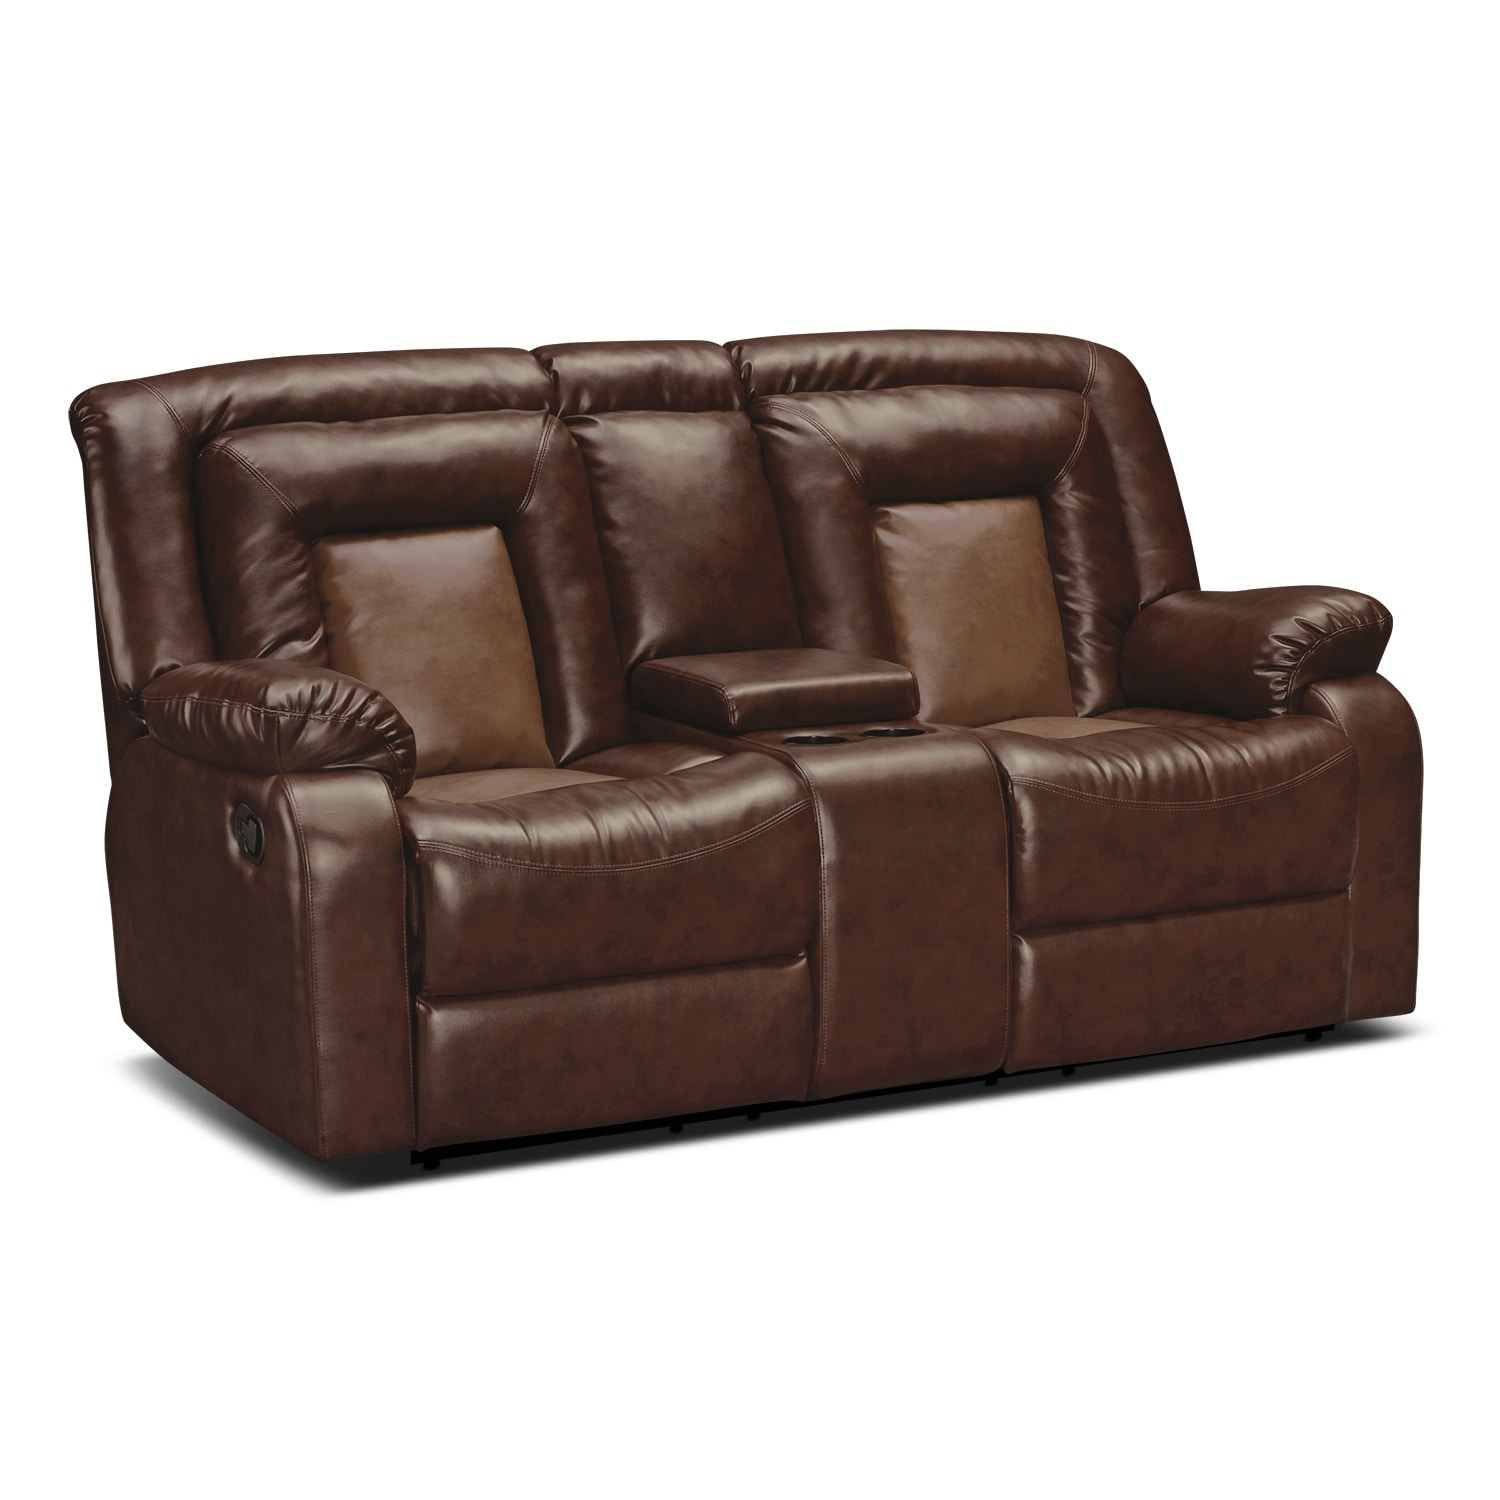 Coming soon Reclining leather sofa and loveseat